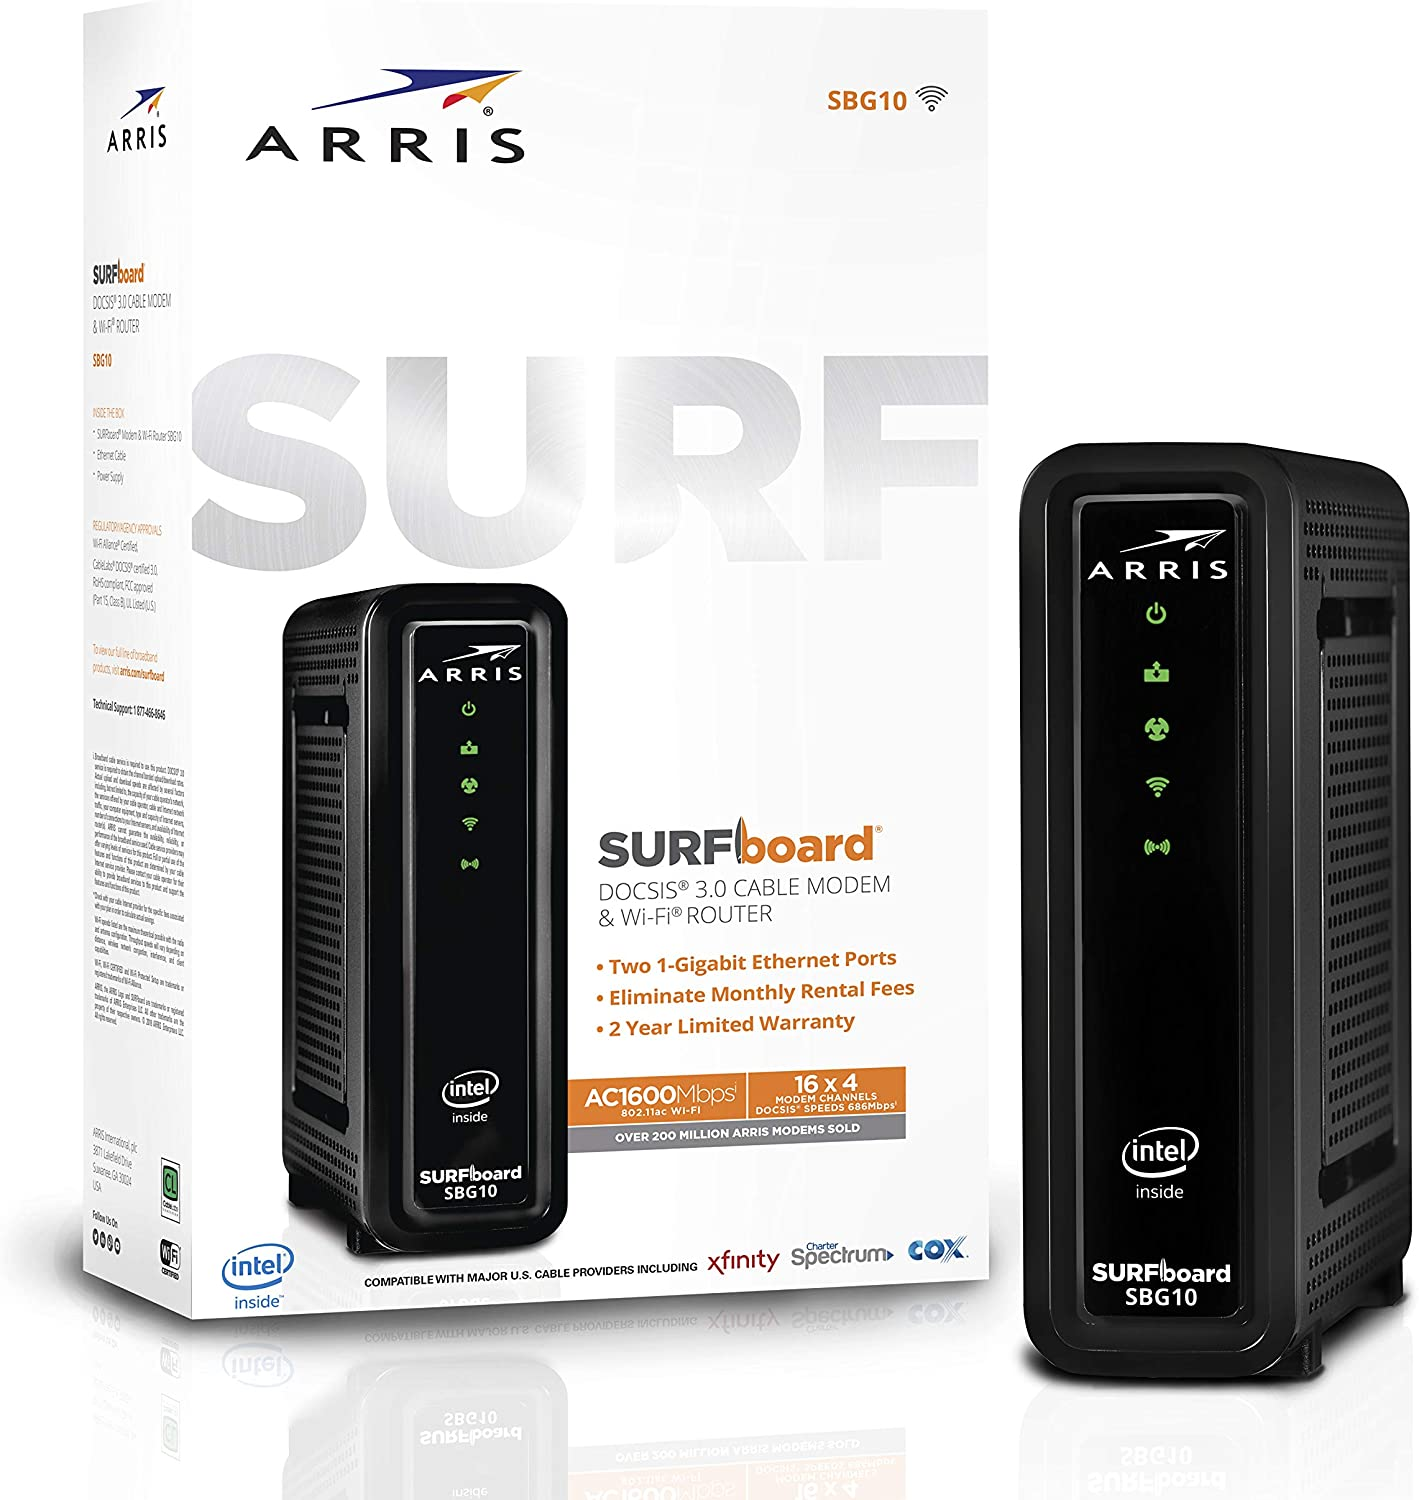 ARRIS Surfboard SBG10 DOCSIS 3.0 Cable Modem & AC1600 Dual Band Wi-Fi Router Best Modem Router Combo For Cox, Spectrum, Xfinity & Others